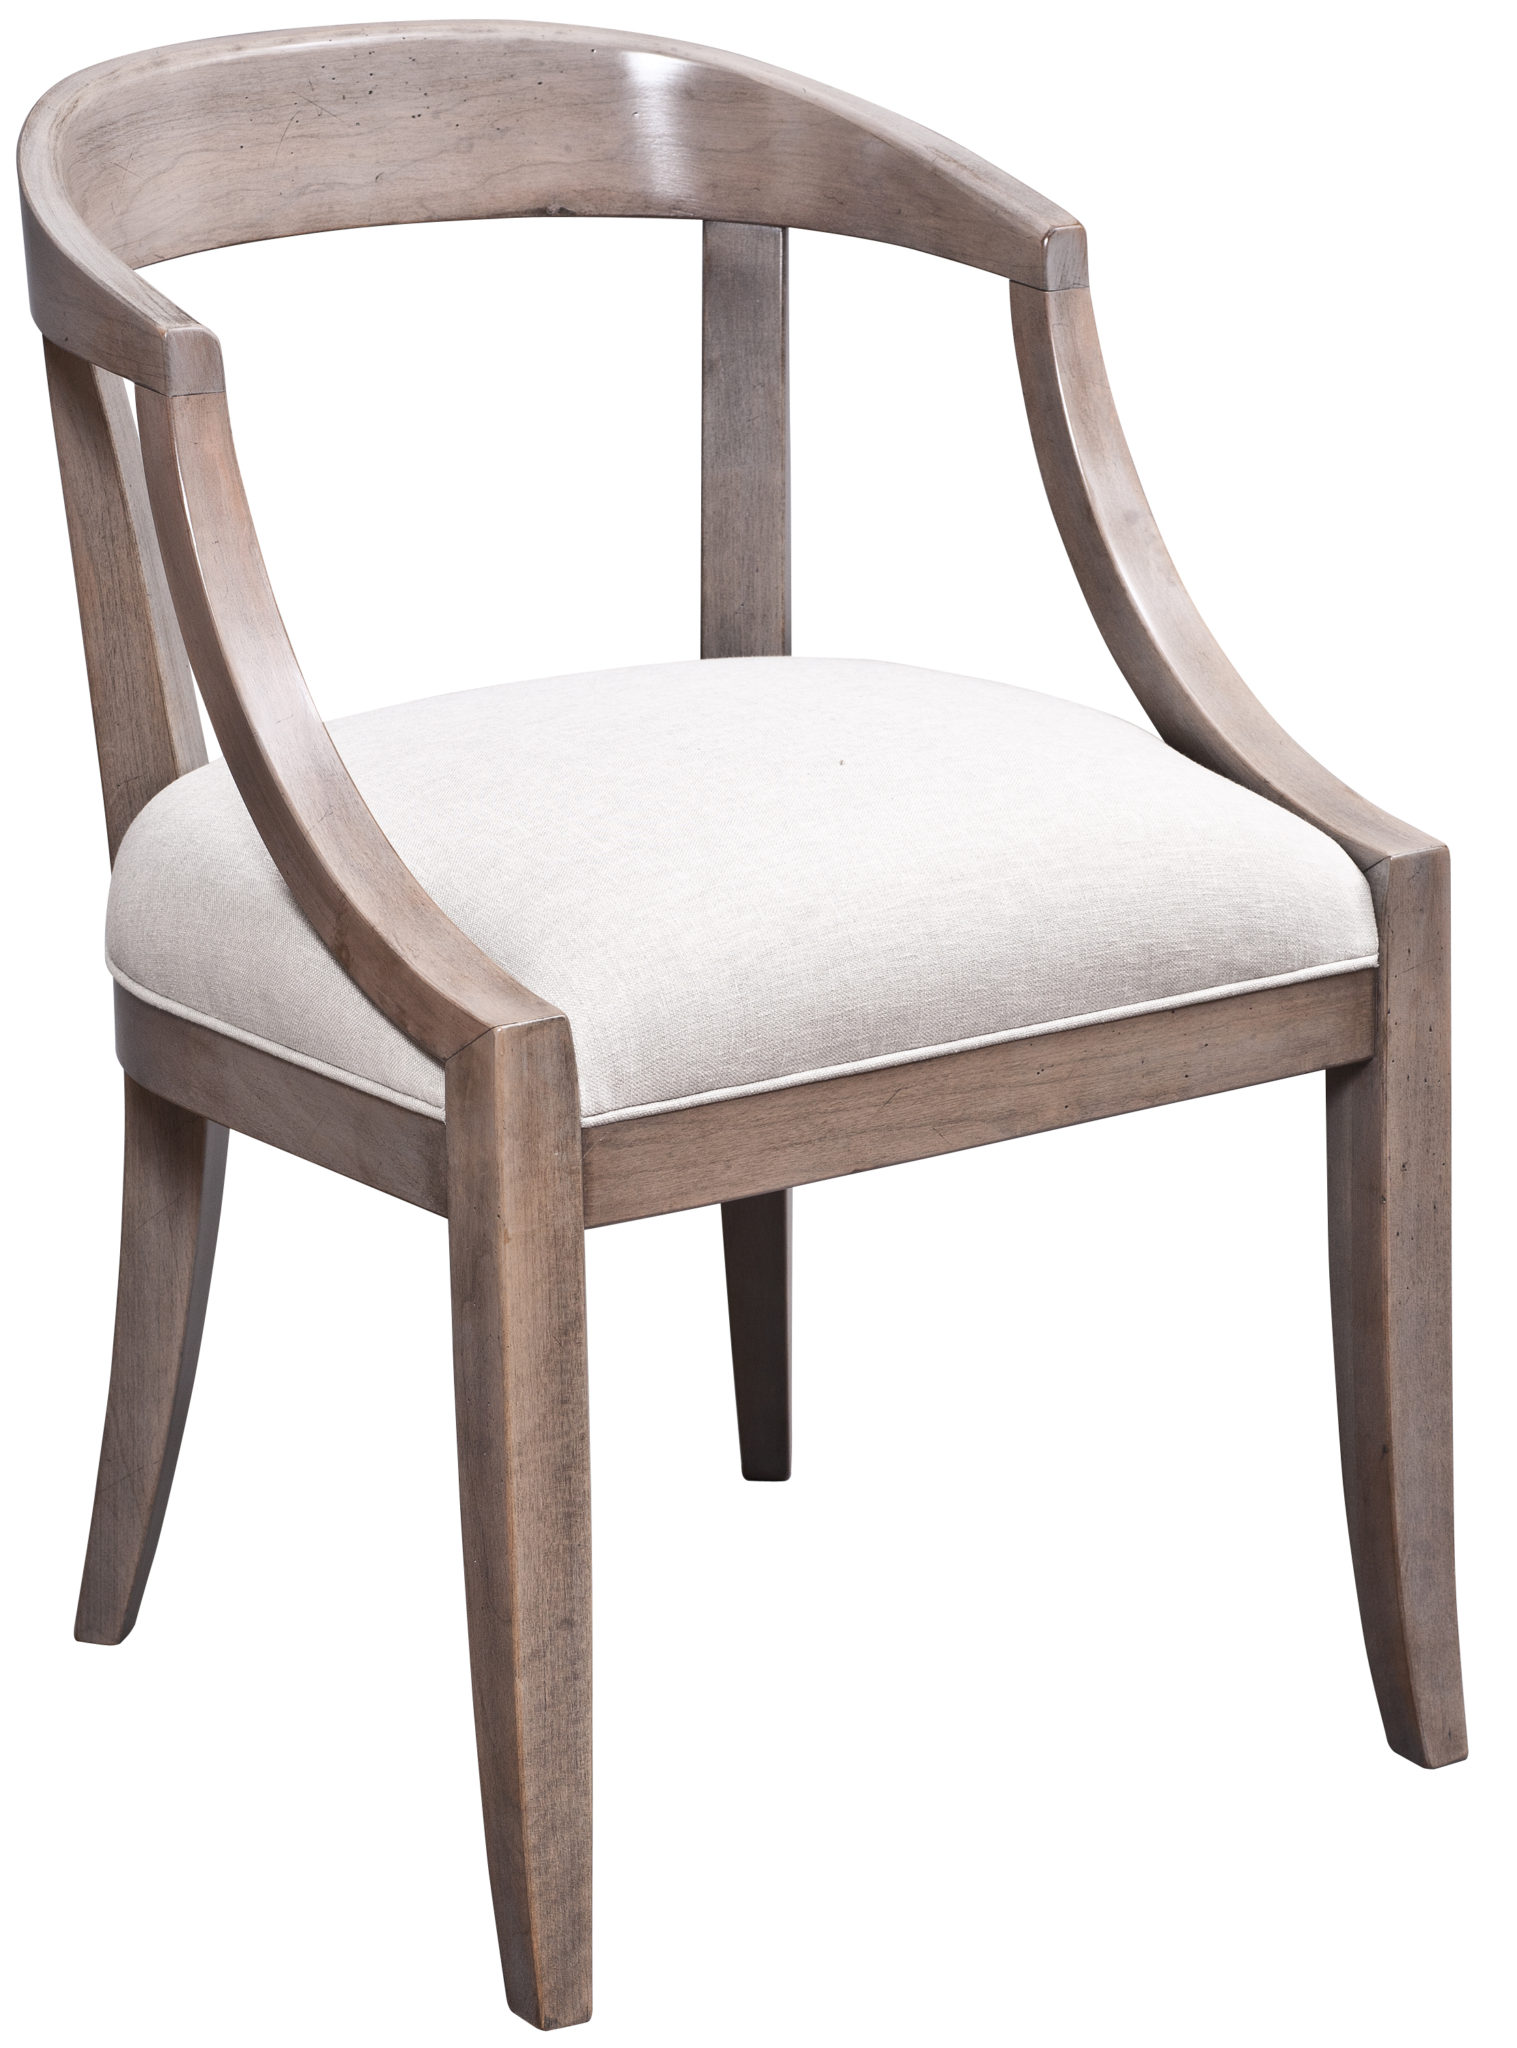 Furniture Type Chairs